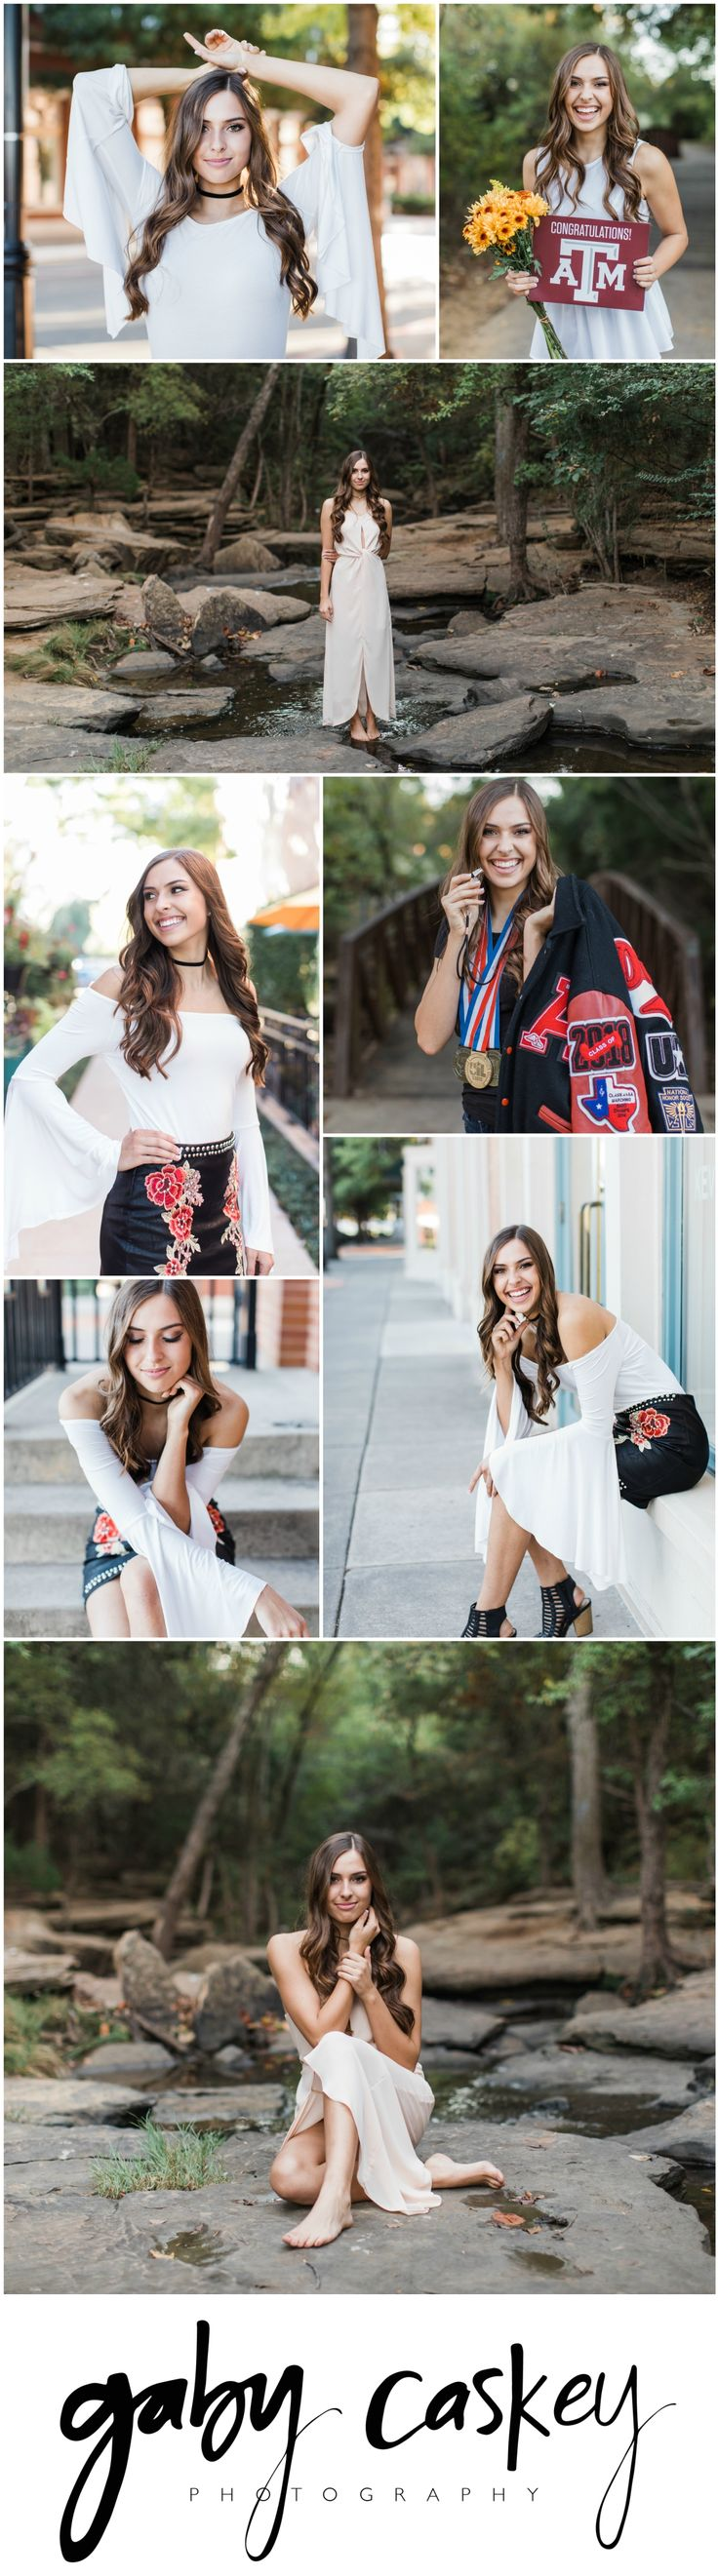 Argyle High School Senior, Senior Pictures, What to wear senior pictures, glam senior session, letter jacket